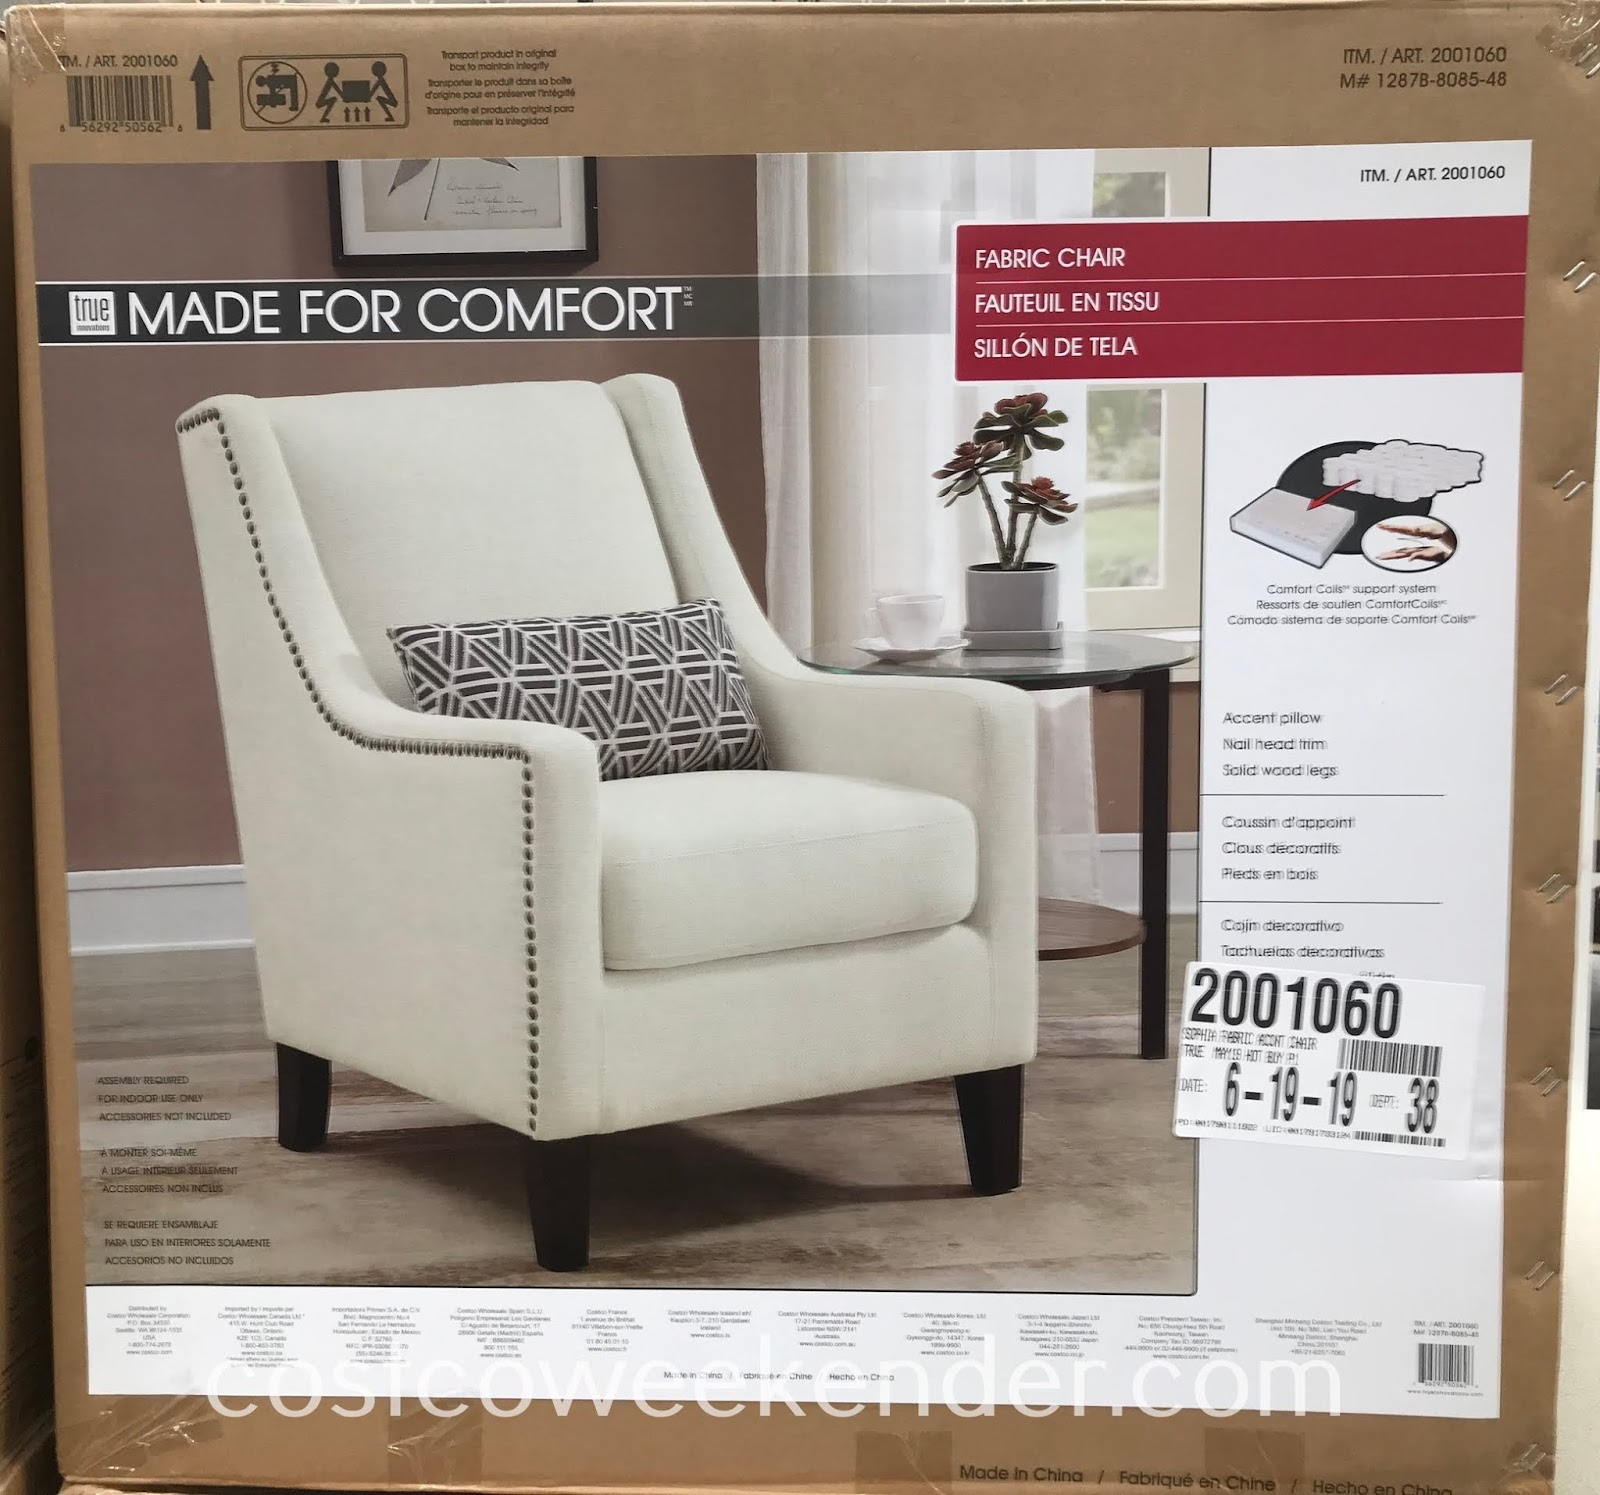 Costco 20001060 - True Innovations Sophia Fabric Accent Chair: great for any living room or family room